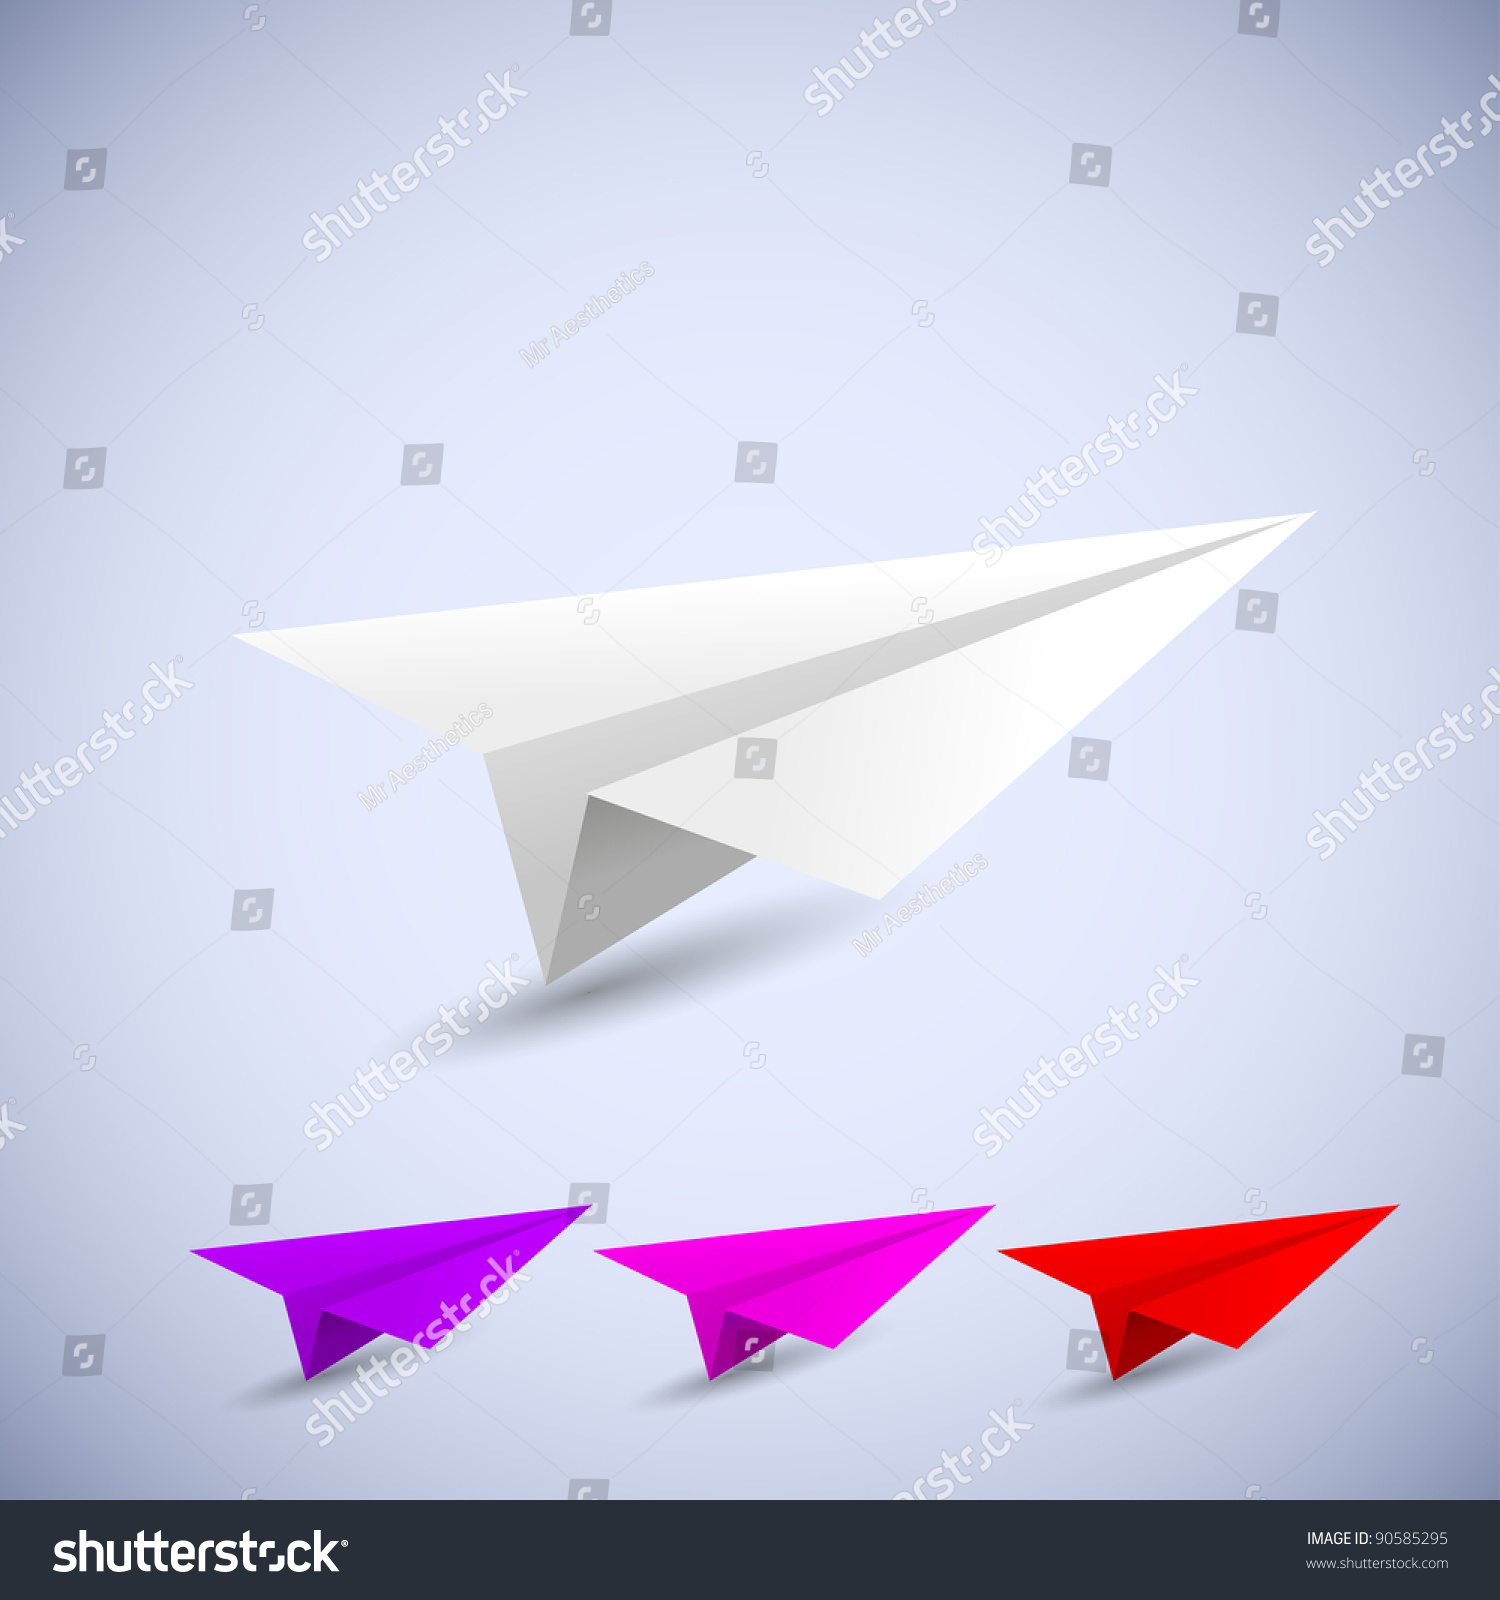 Origami Airplane Set. Vector Illustration - 90585295 ...